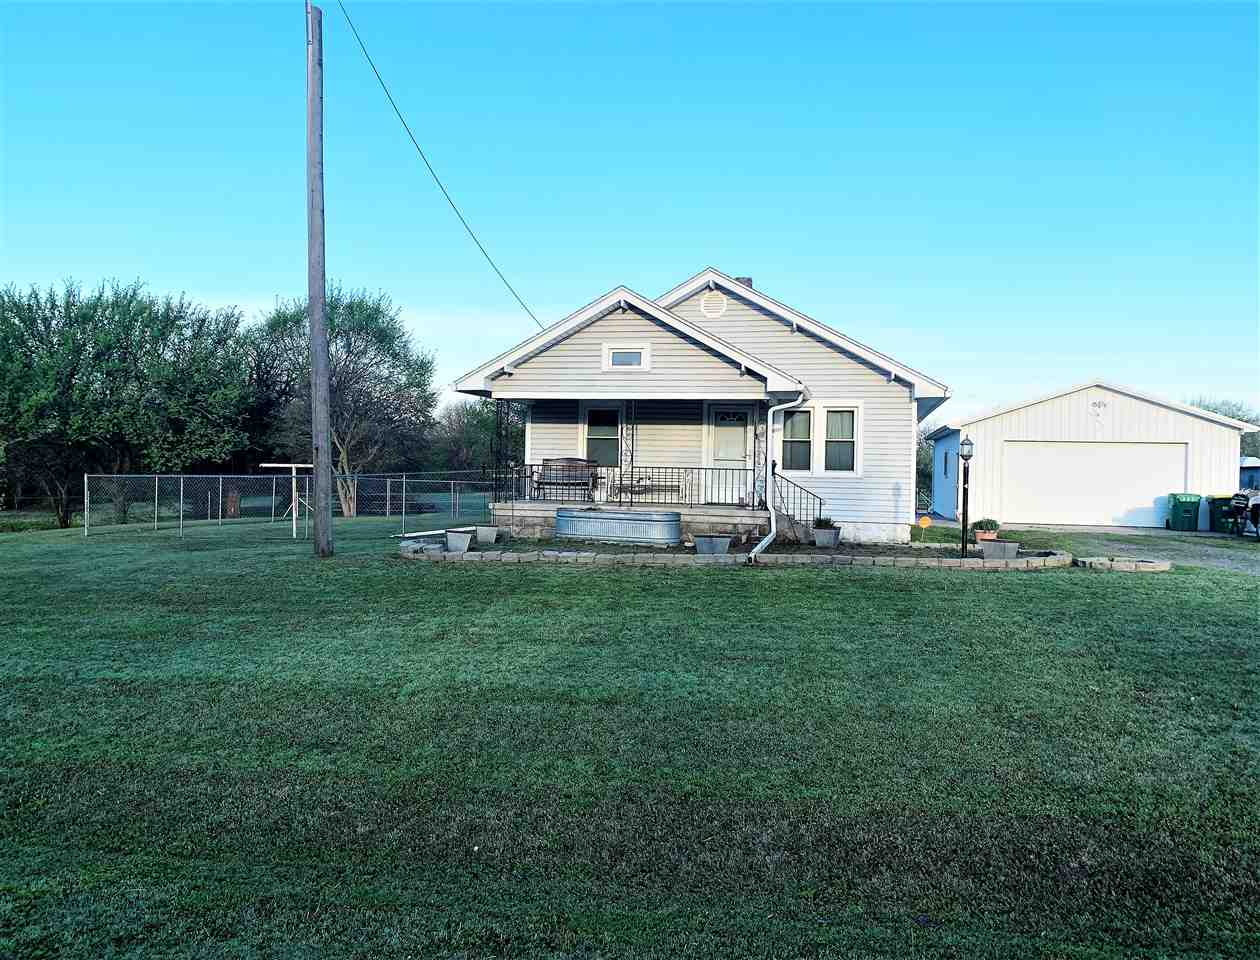 A once in a lifetime opportunity to own a 1 owner, family farm that is 150 years old! Frontage on N